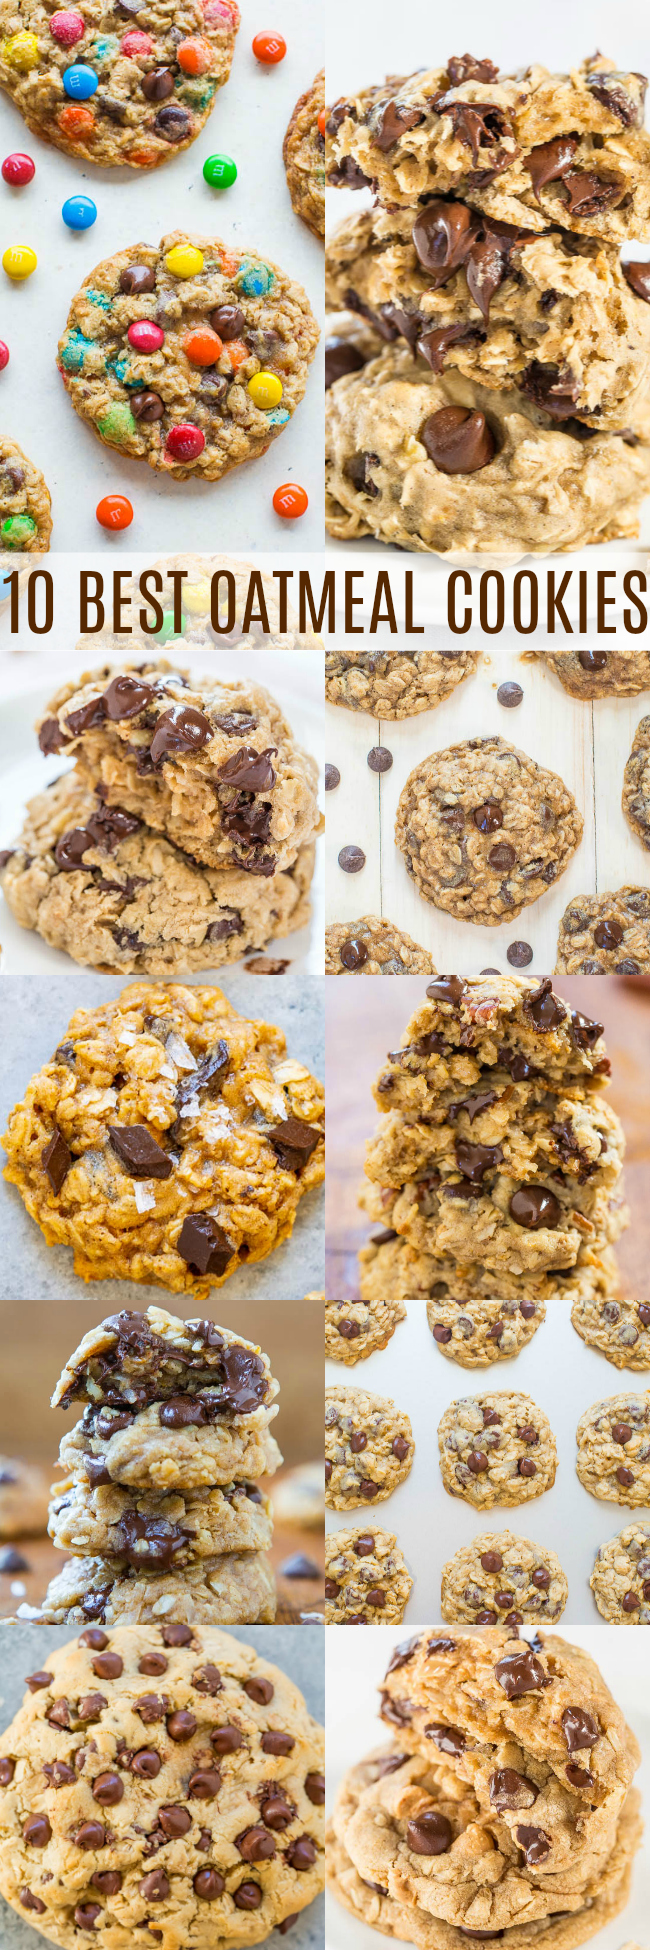 10 Best Oatmeal Cookie Recipes - Every single recipe is for soft, chewy cookies that are loaded with CHOCOLATE!! No raisins in sight! All are EASY, family FAVORITES, and made with common pantry ingredients!!